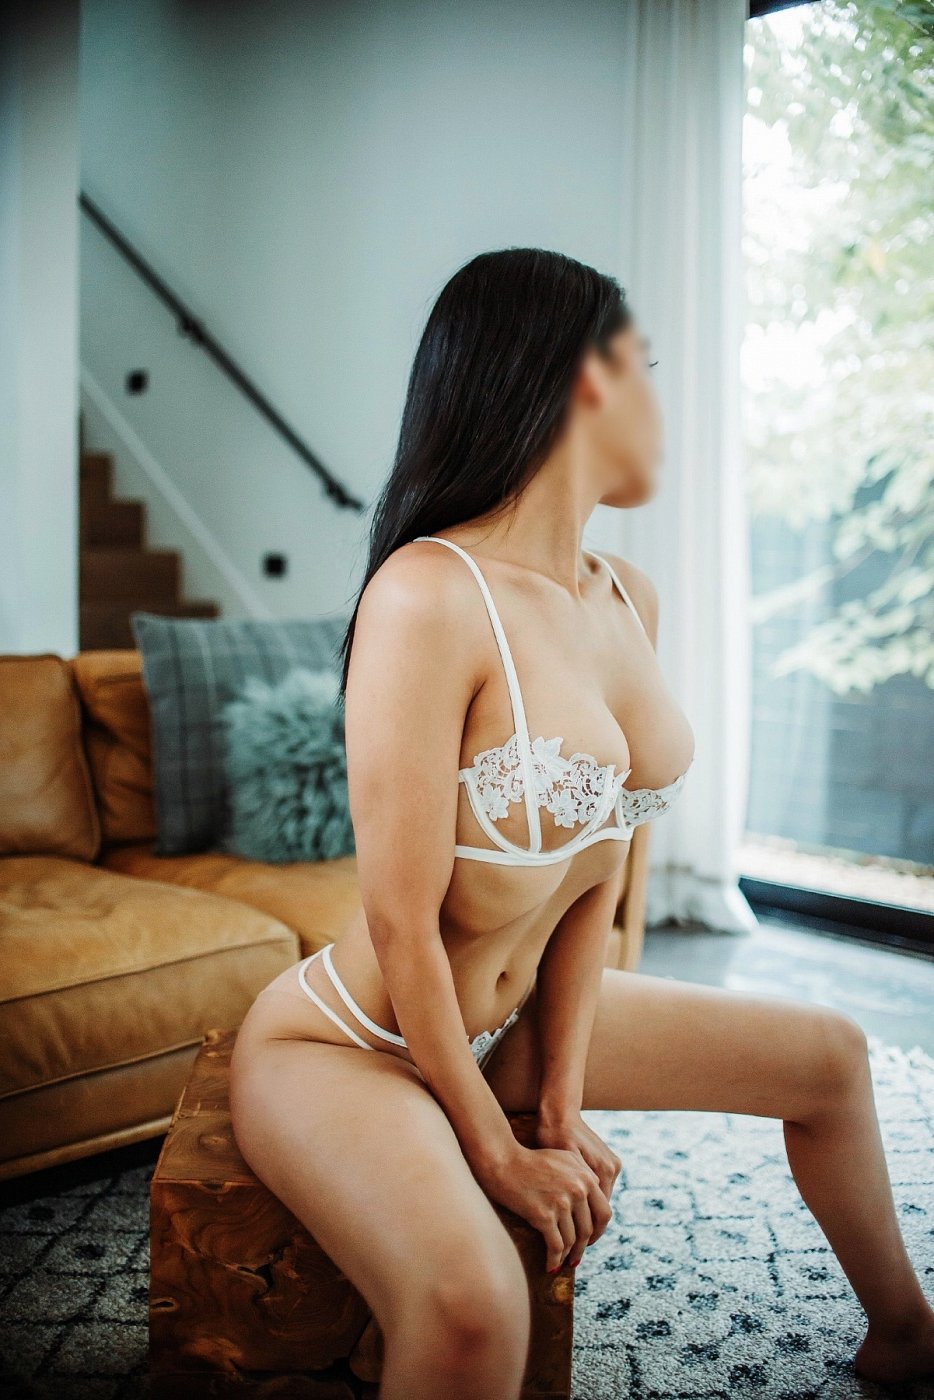 cheap escort girl